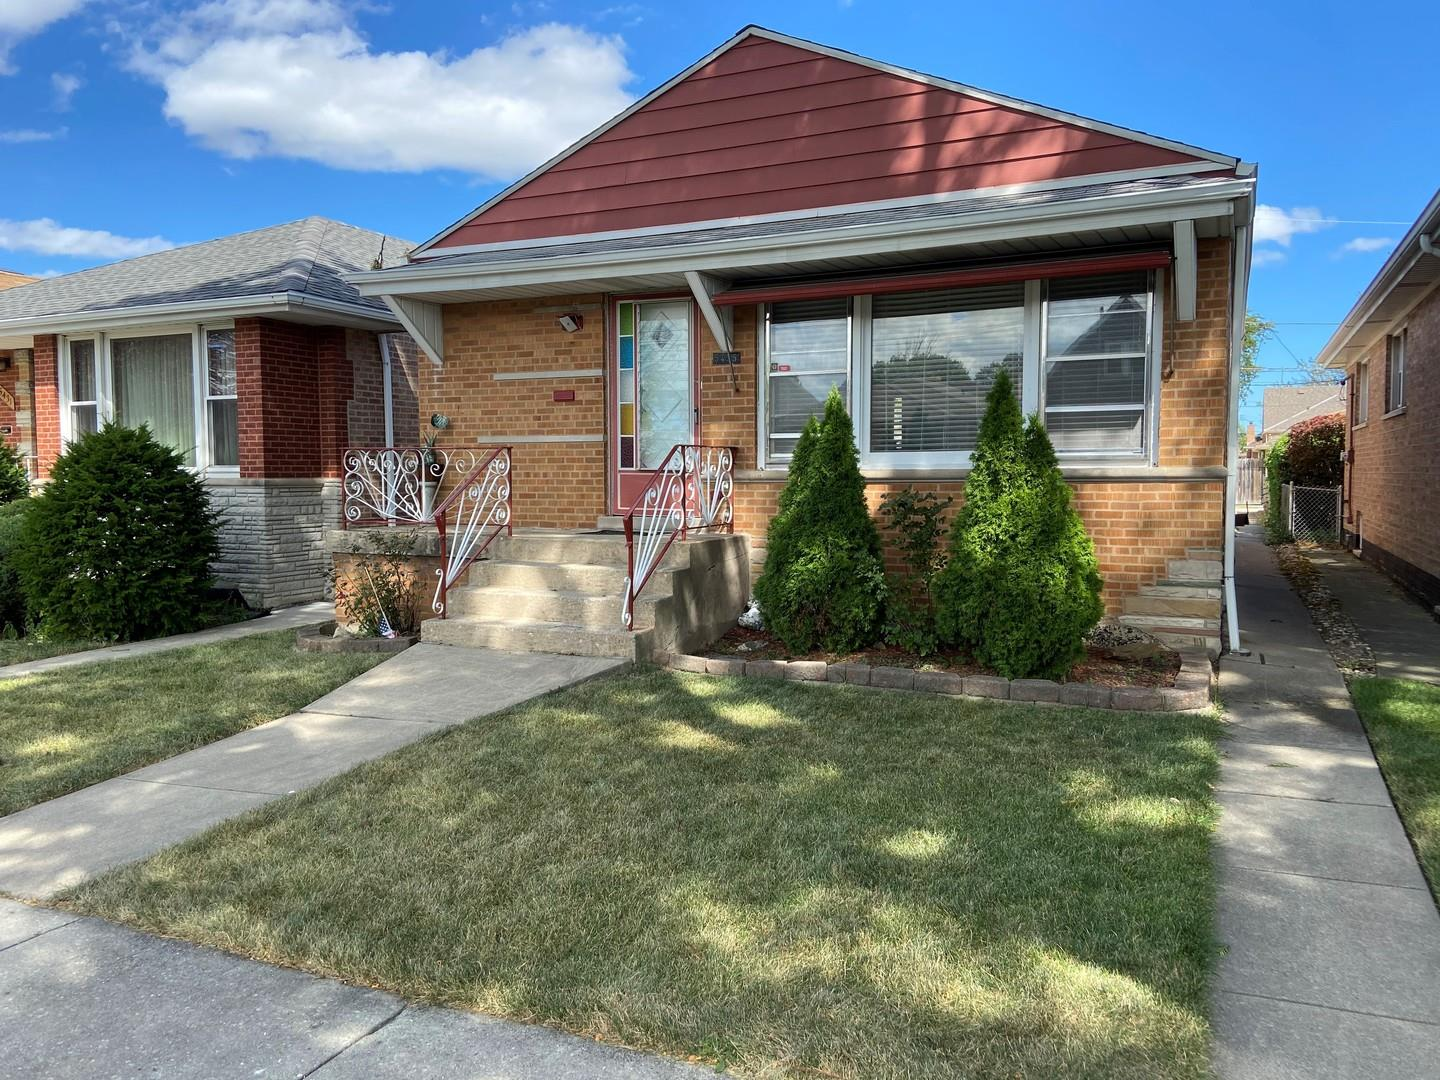 5435 S Normandy Avenue, Chicago, IL 60638 - #: 10822947